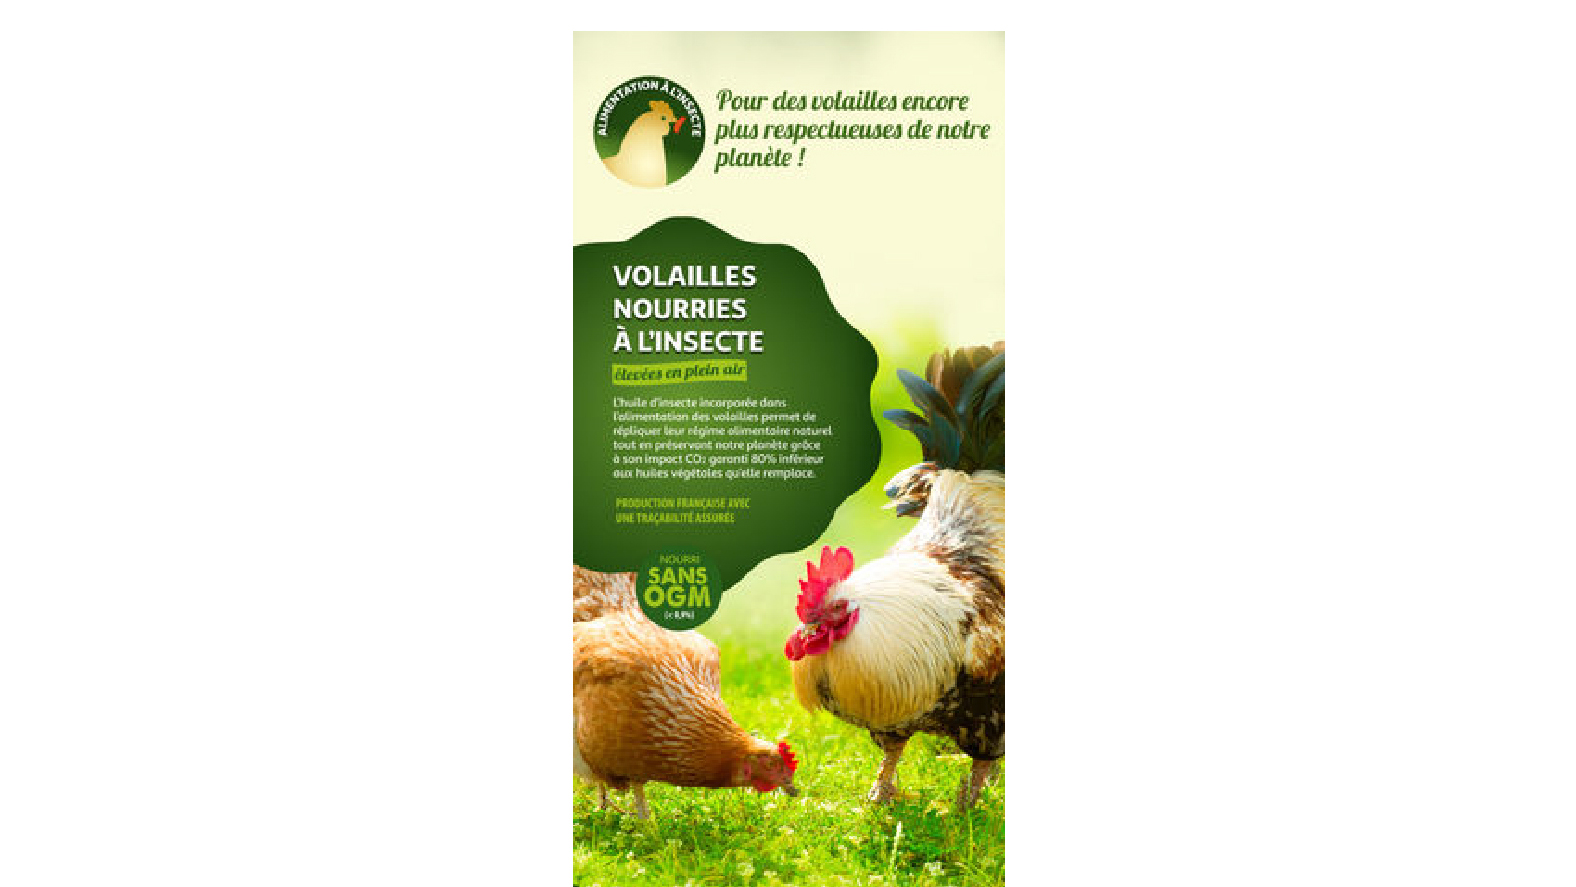 Auchan will offer chickens fed with insects